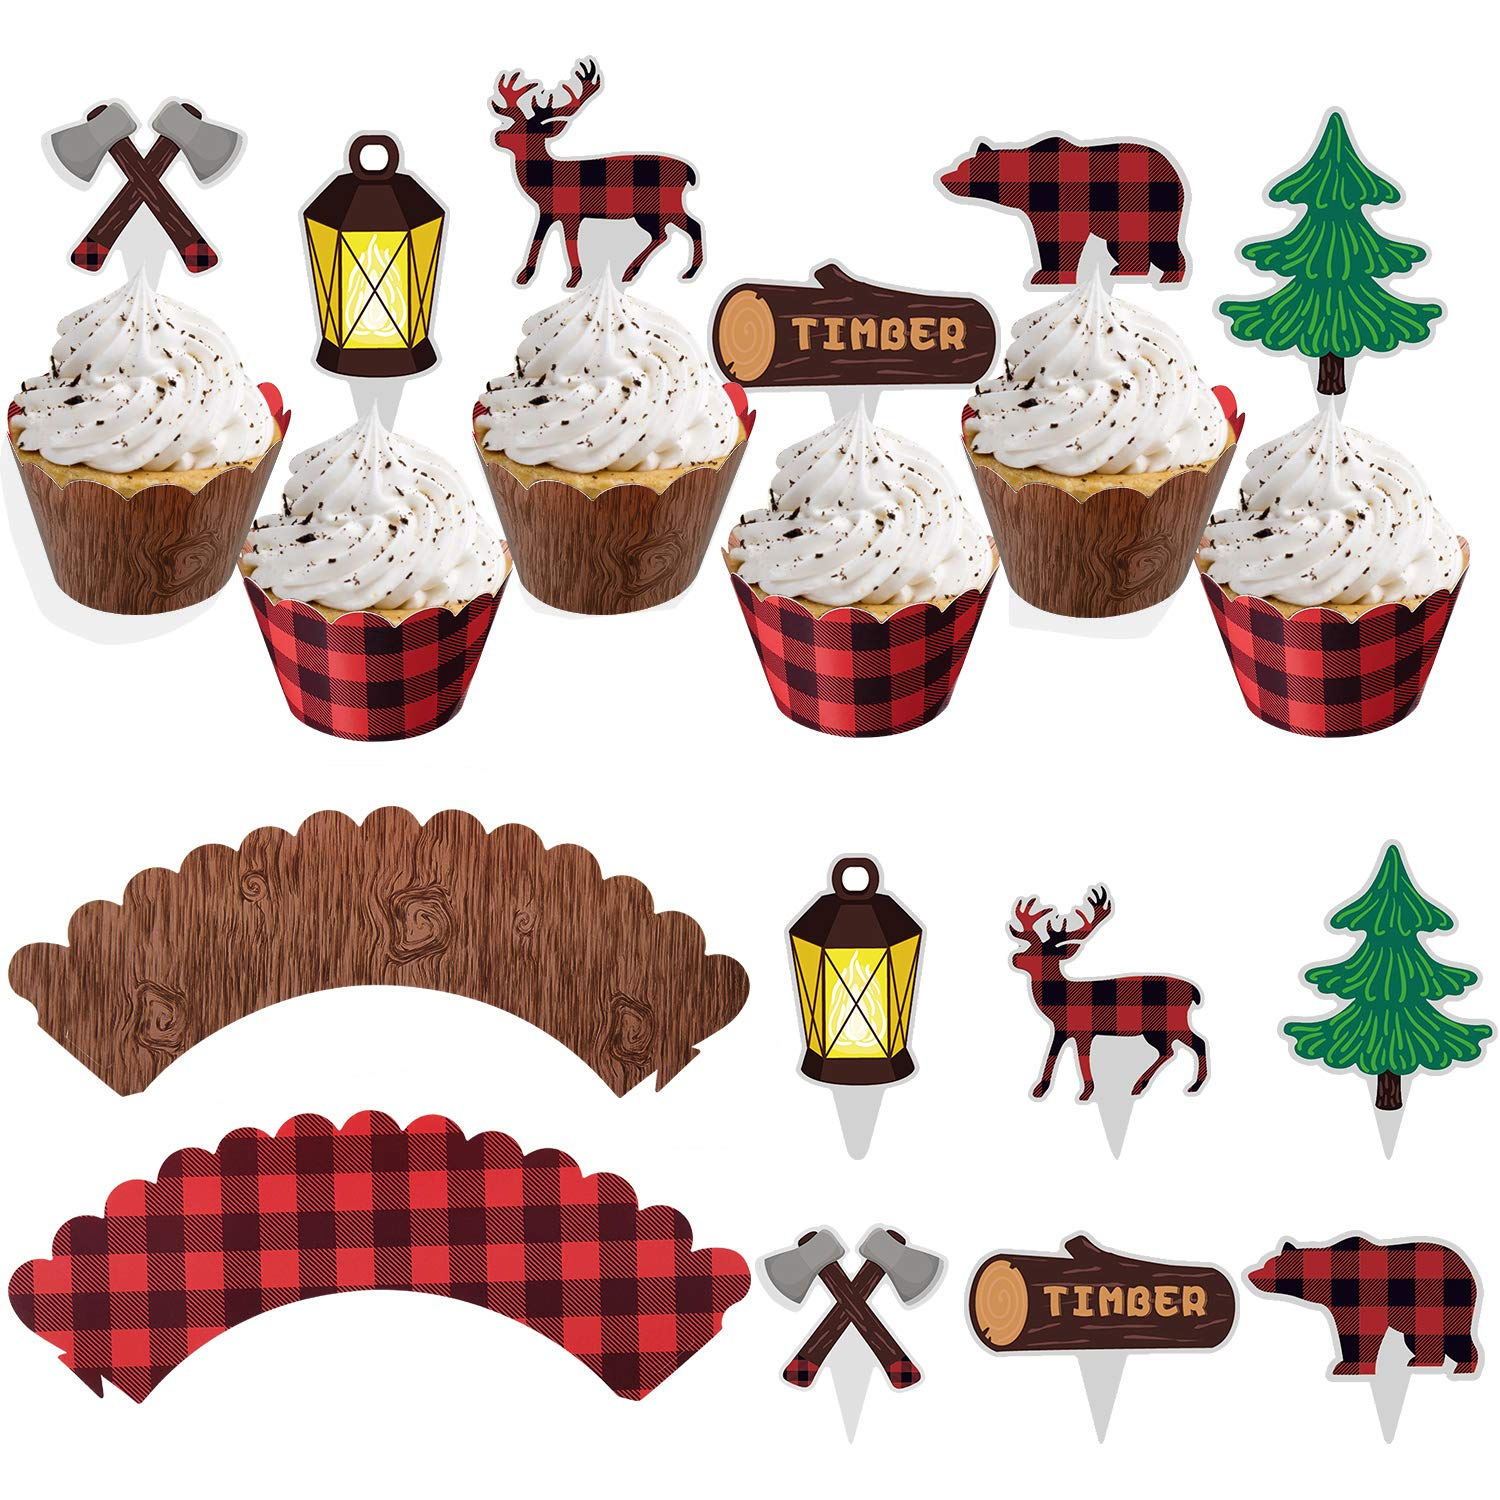 48Pcs Lumberjack Cupcake Toppers & Wood Grain Buffalo Plaid Wrappers, Perfect for Campfire Party Supplies, Lumberjack Theme Birthday Decor, Woodland Baby Shower Decorations, Rustic Woodsy Wedding